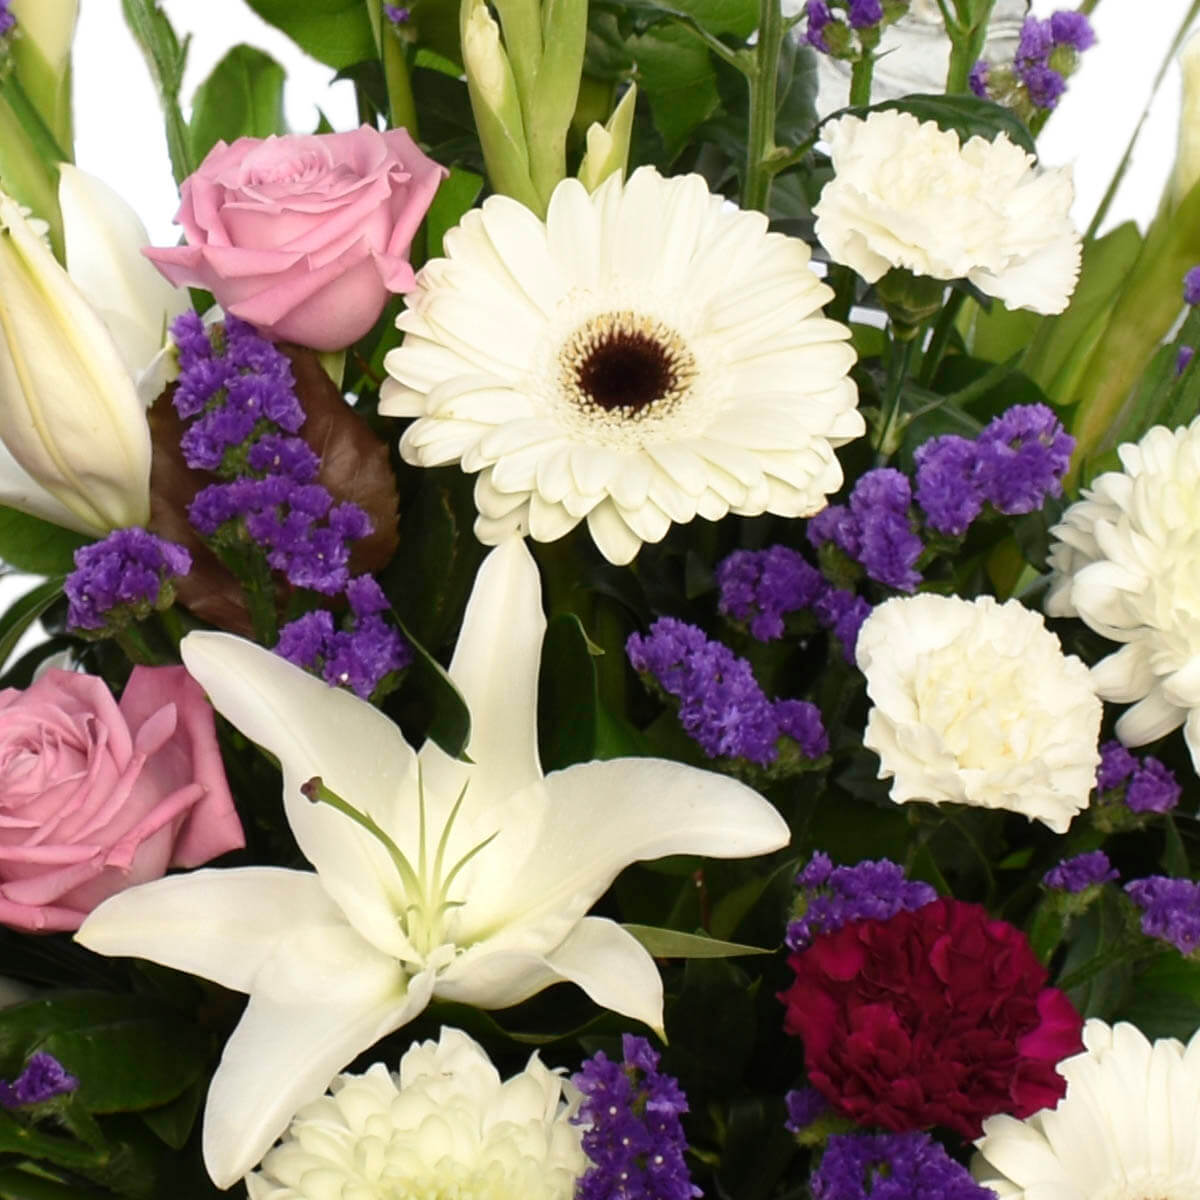 Vancouver Sympathy Flowers for Mom - Burnaby Florist - Adele Rae